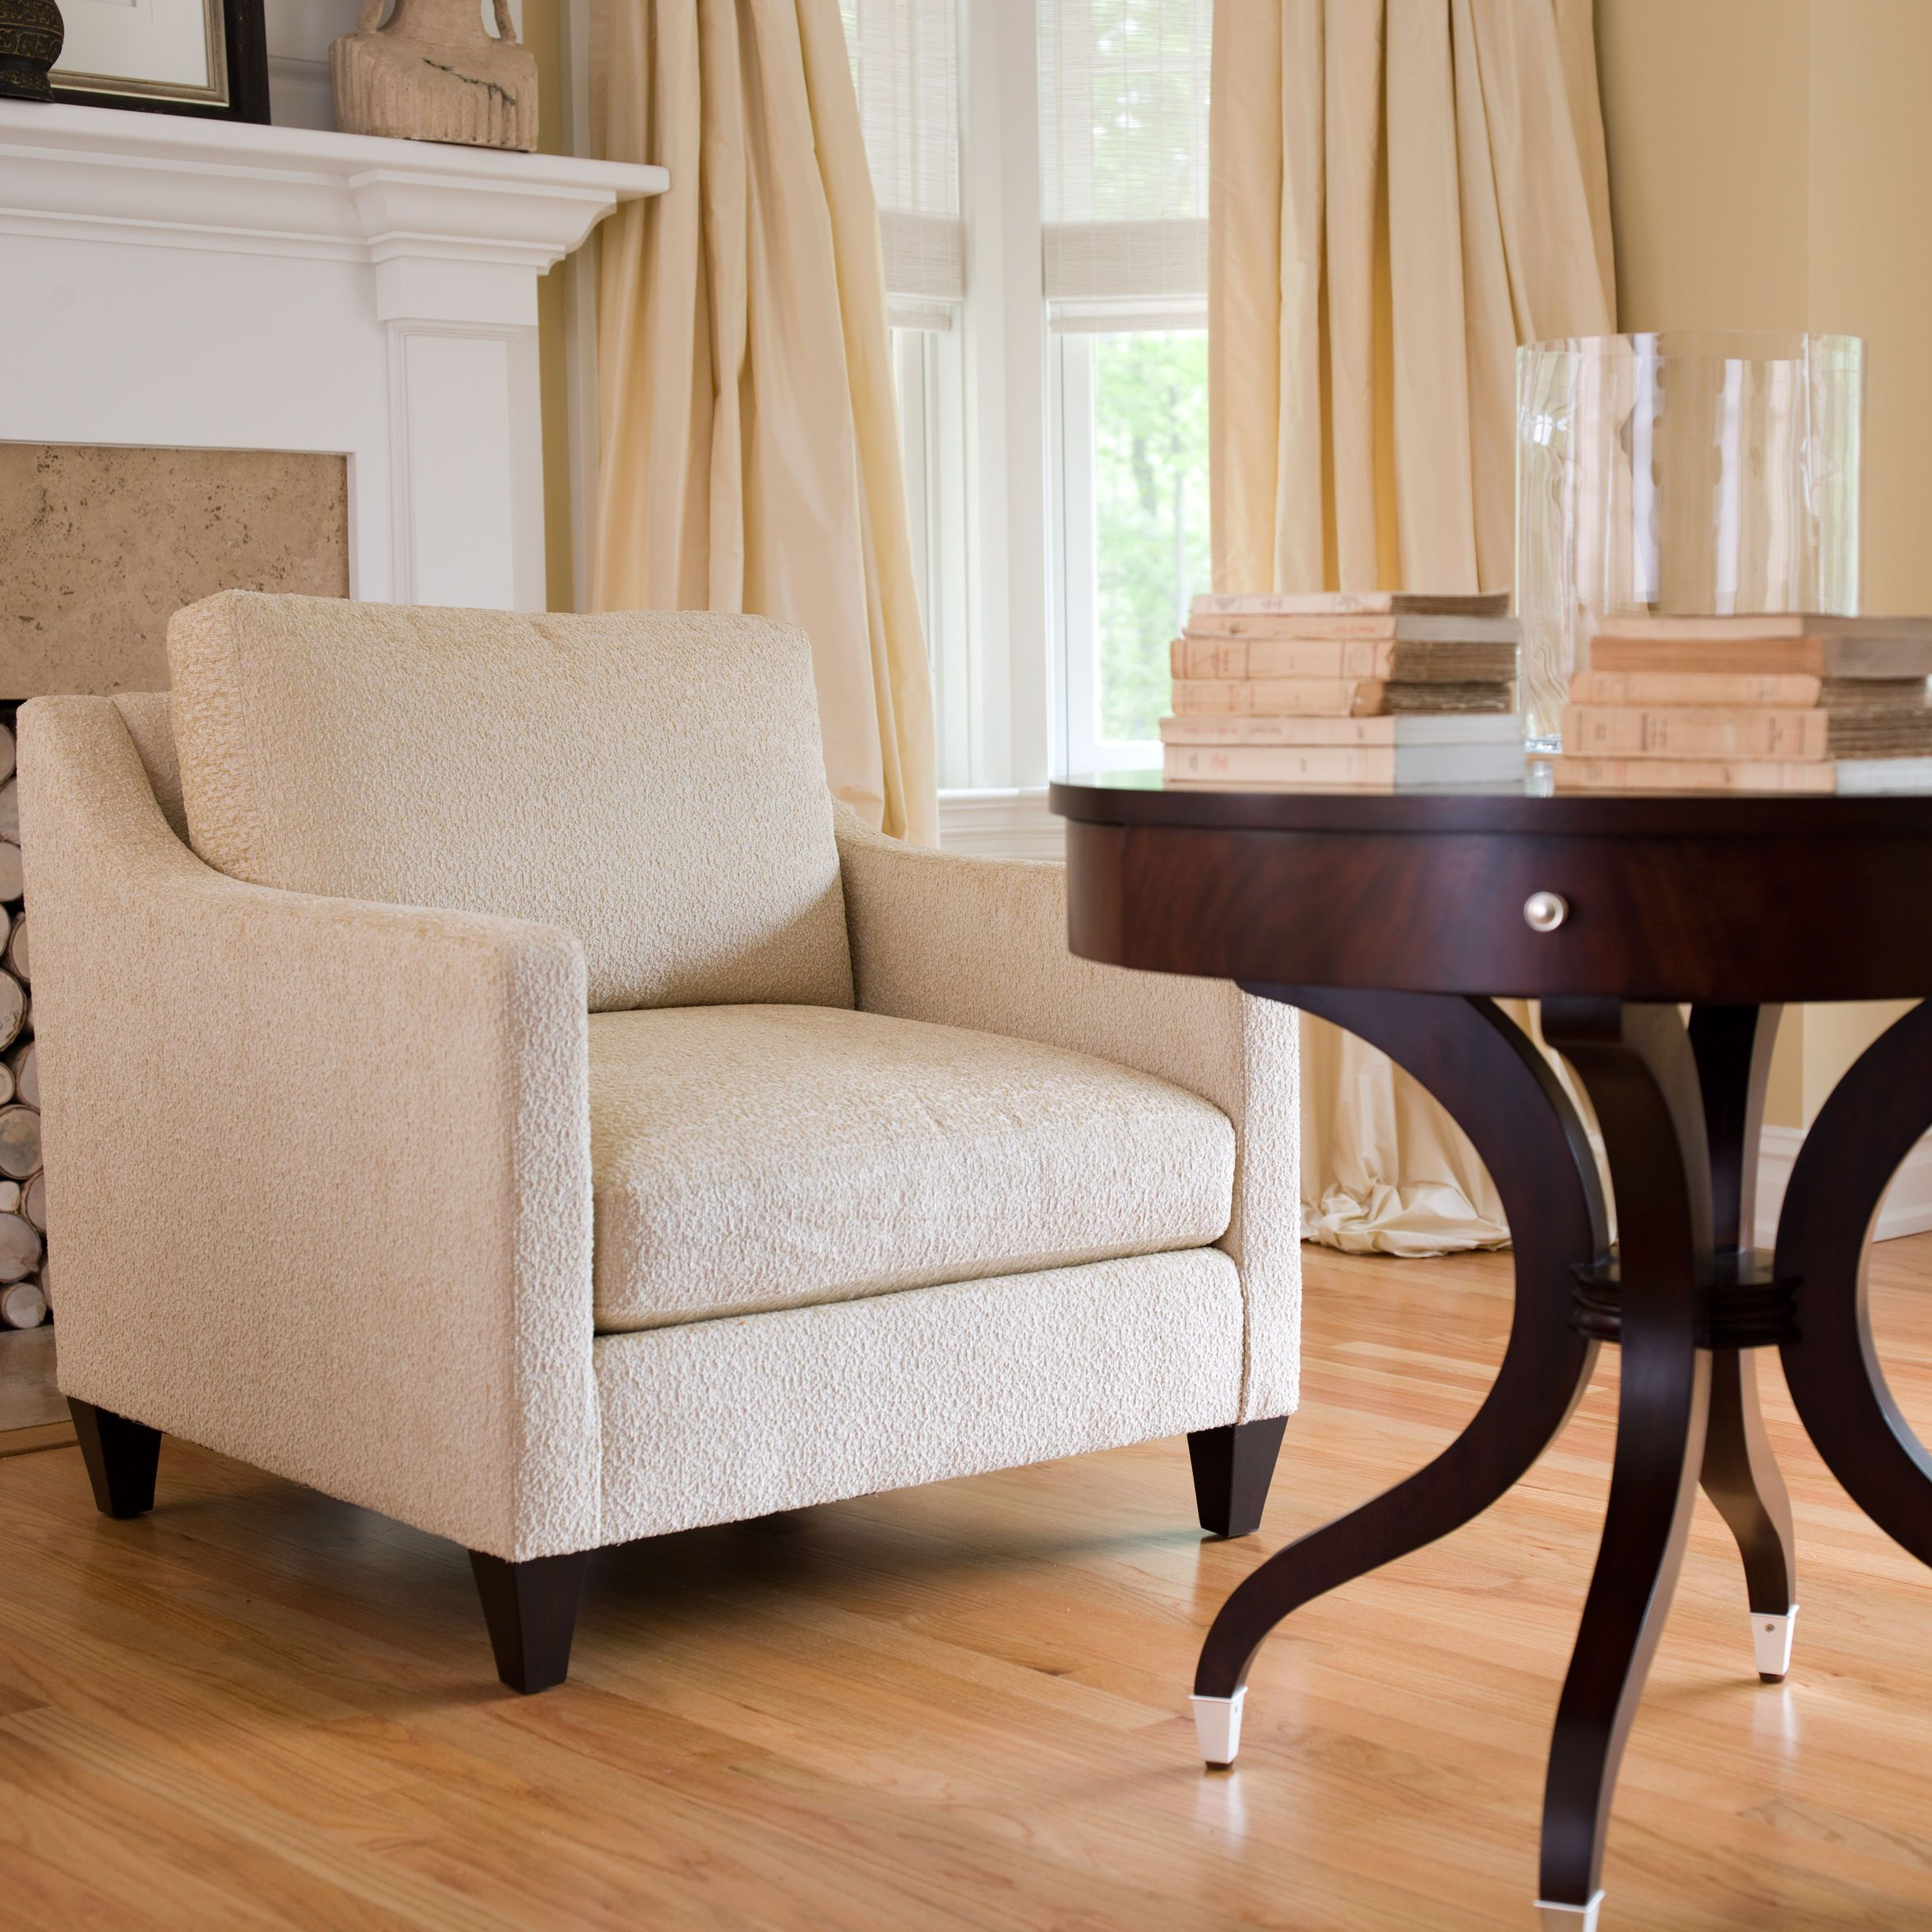 Ethan allen living room chairs for Ethan allen living room sets